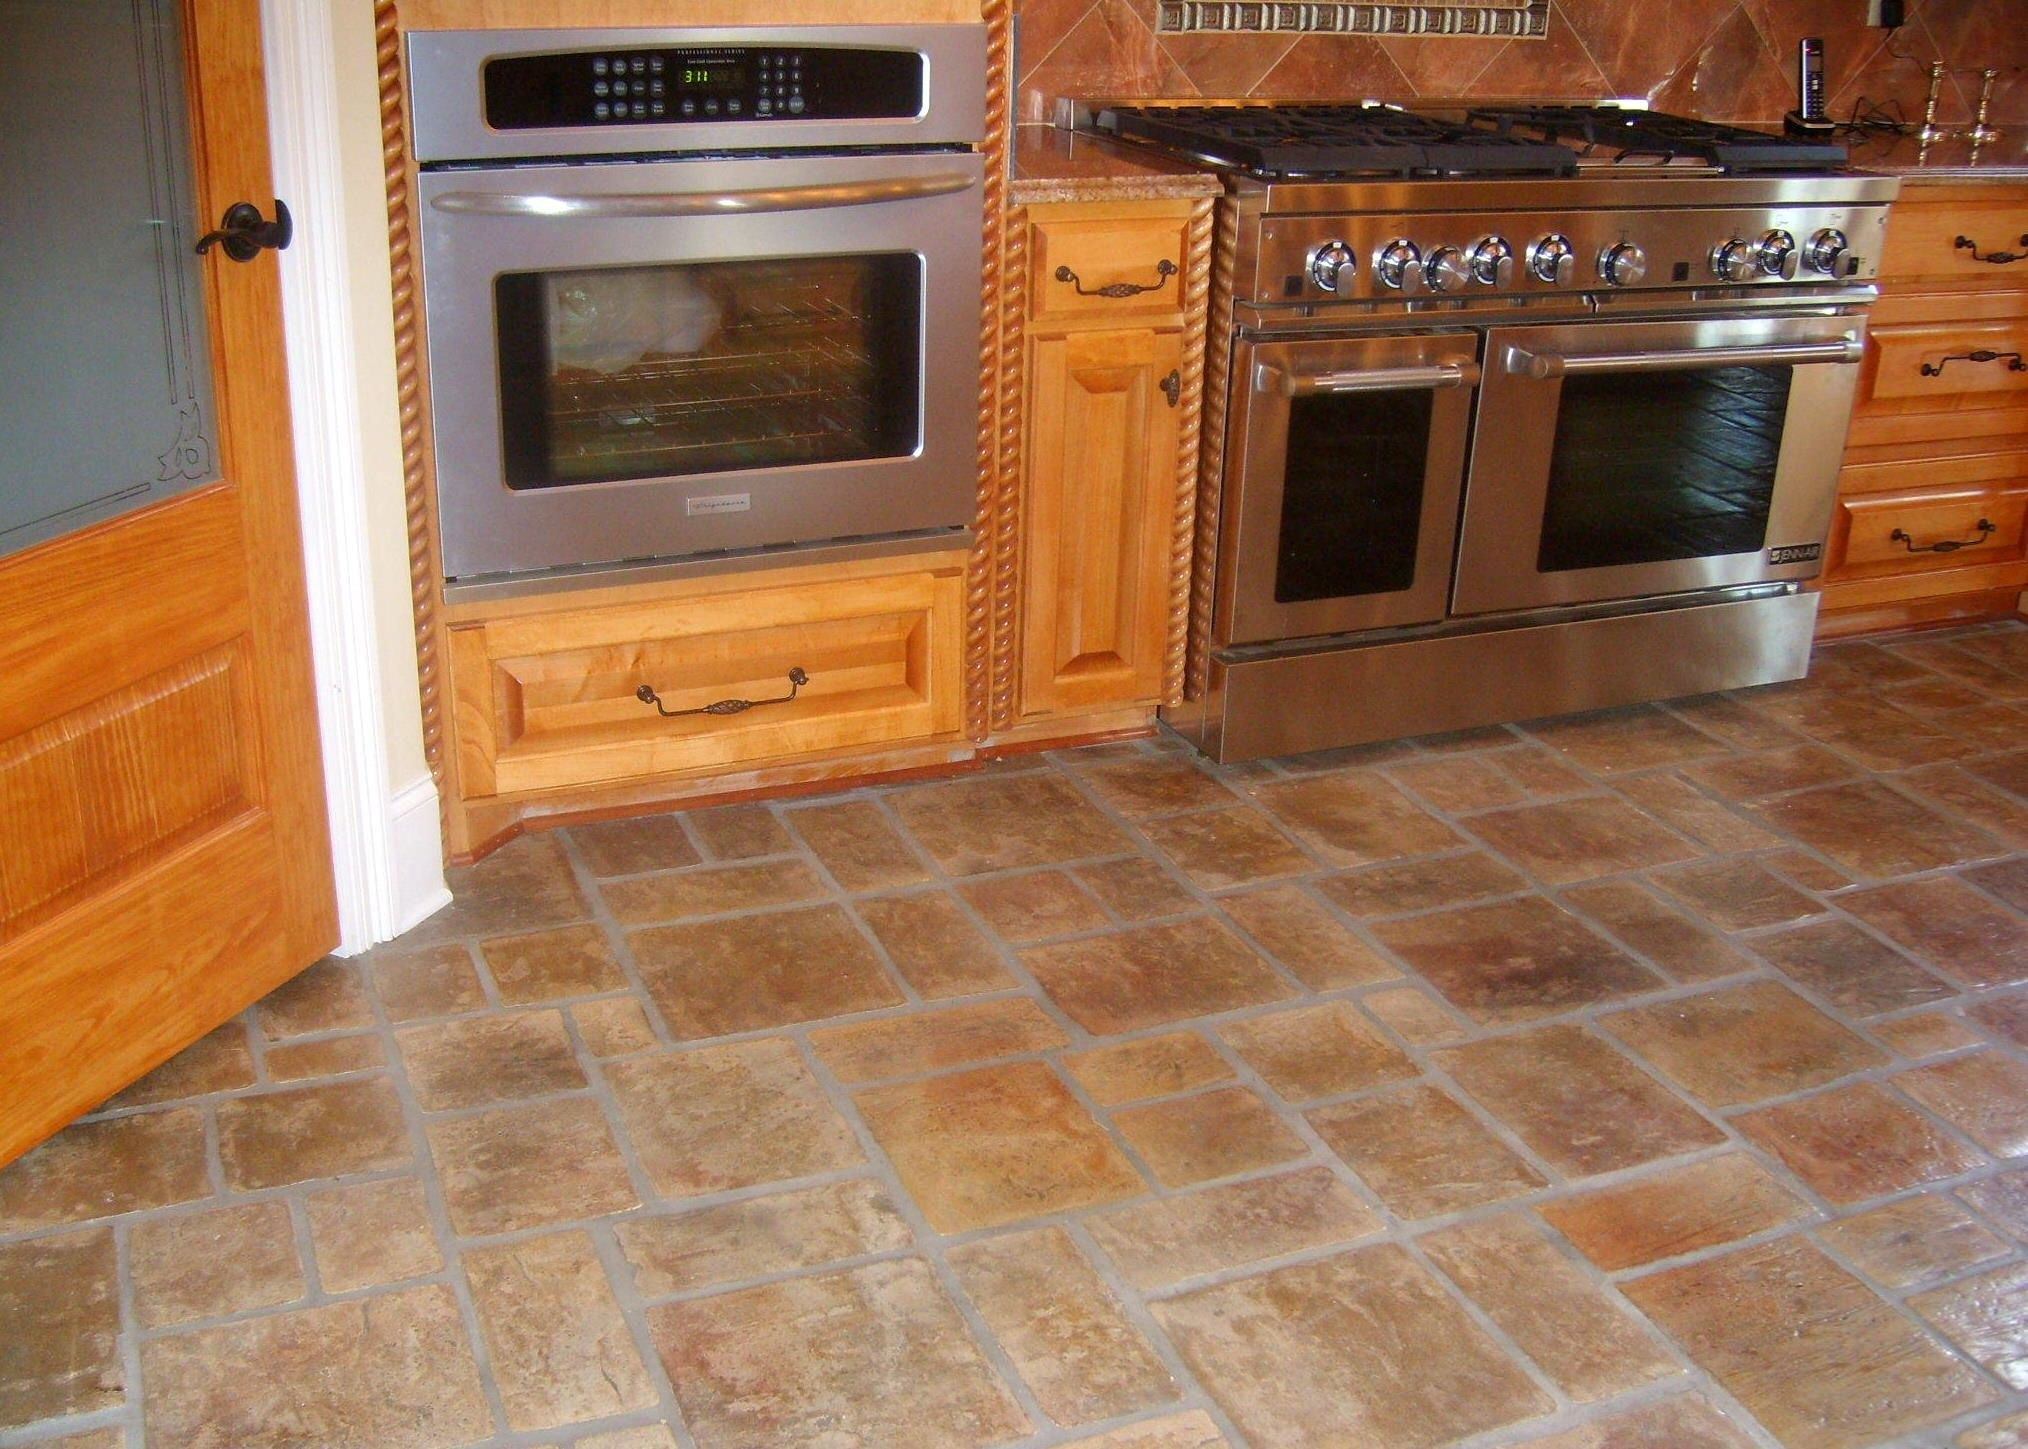 8 inspirational photos of gorgeous brick flooring kitchen floors 8 inspirational photos of gorgeous brick flooring brick kitchen floorskitchen tile dailygadgetfo Gallery